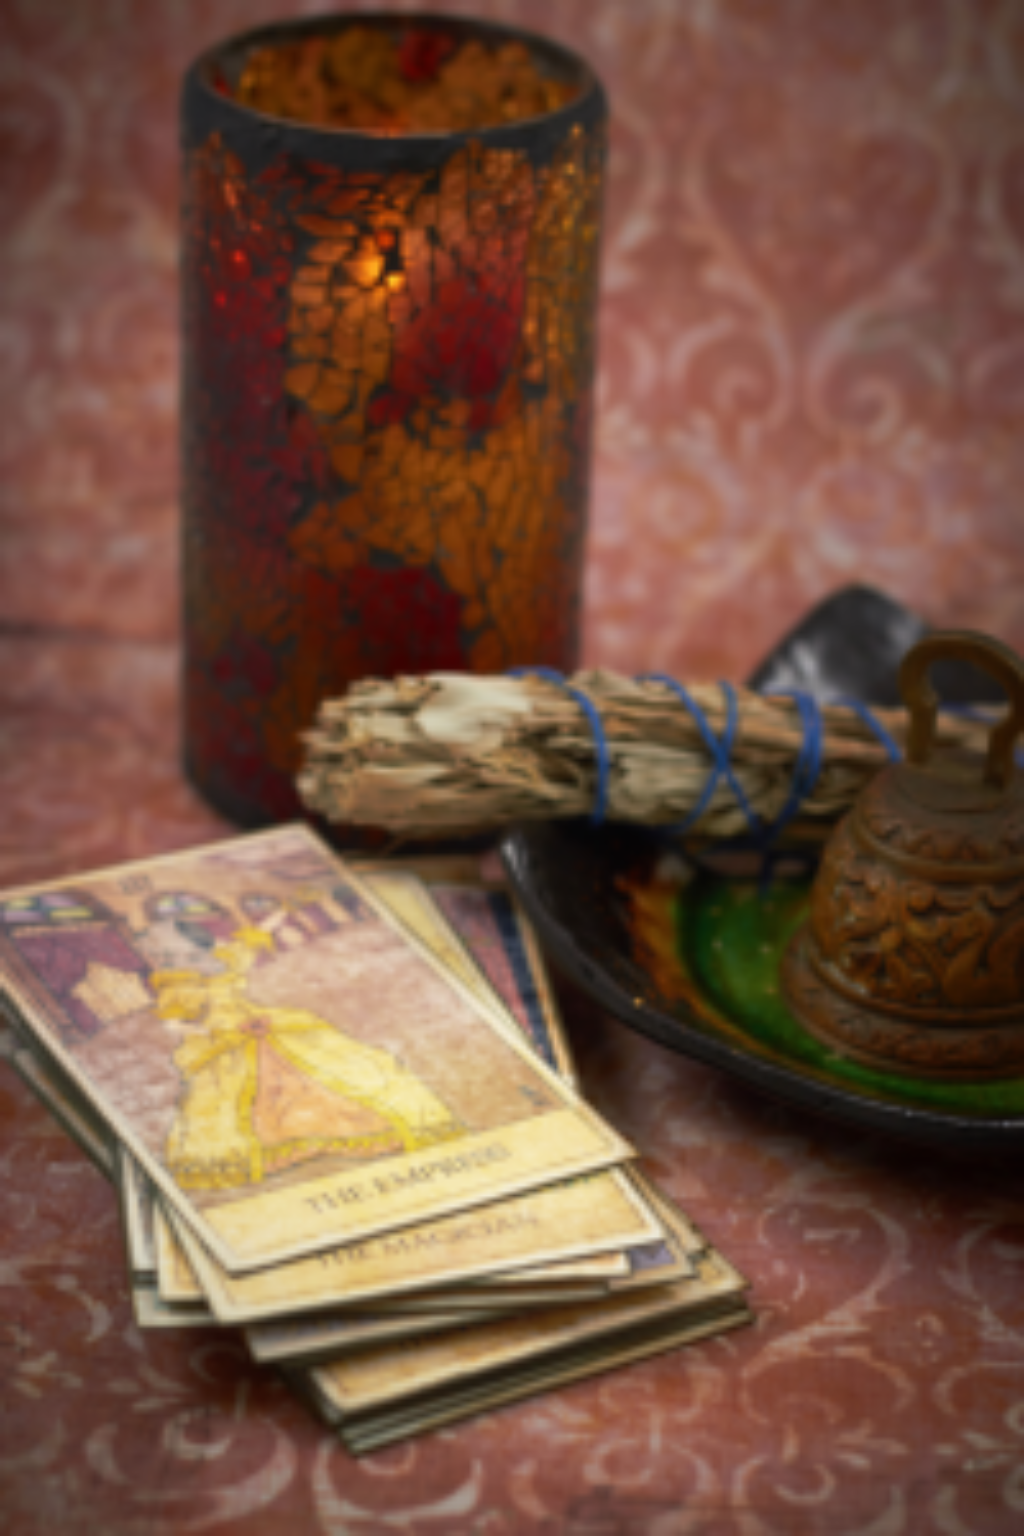 TAROT CARDS: SEXED-UP GO FISH, OR THE REAL DEAL?